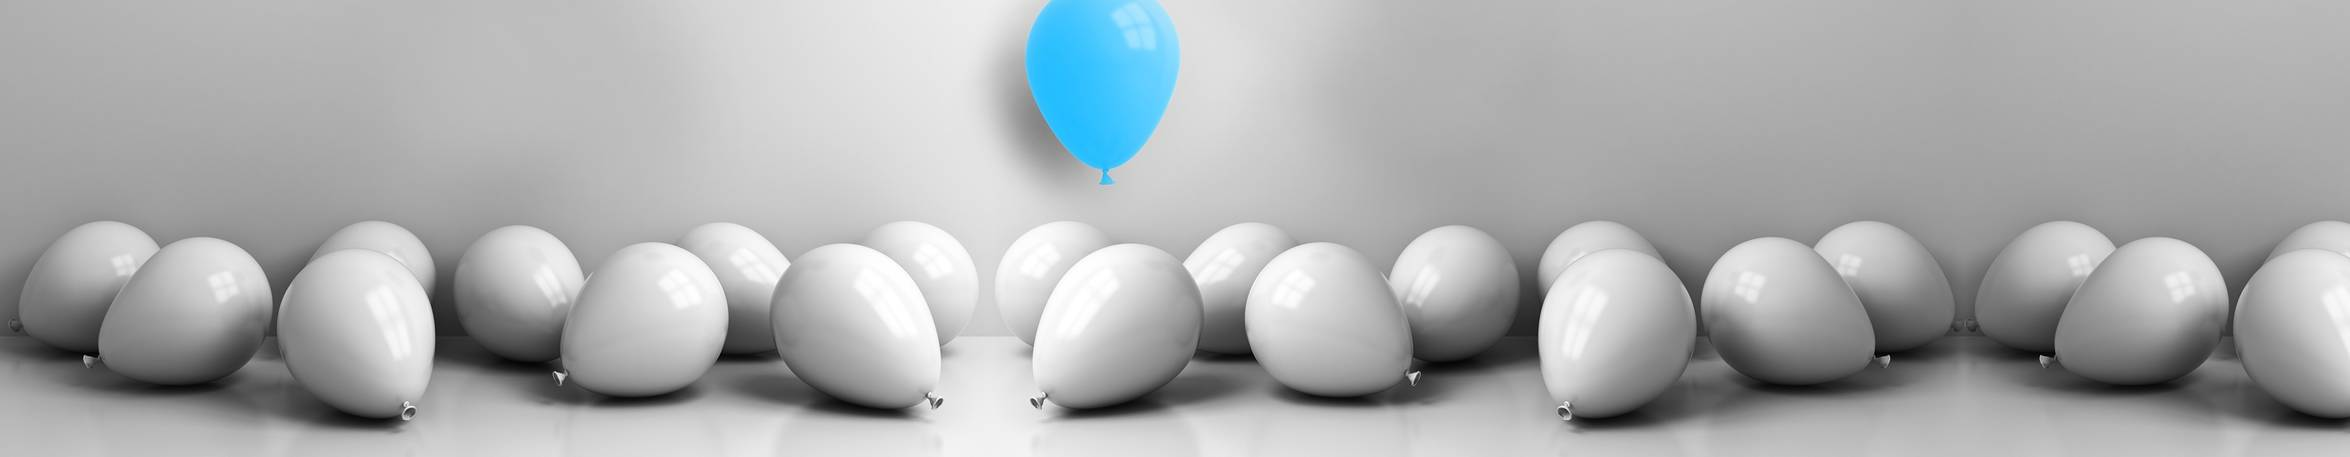 Opinion Article Hero Image, grey balloons scattered on the floor with one blue balloon floating